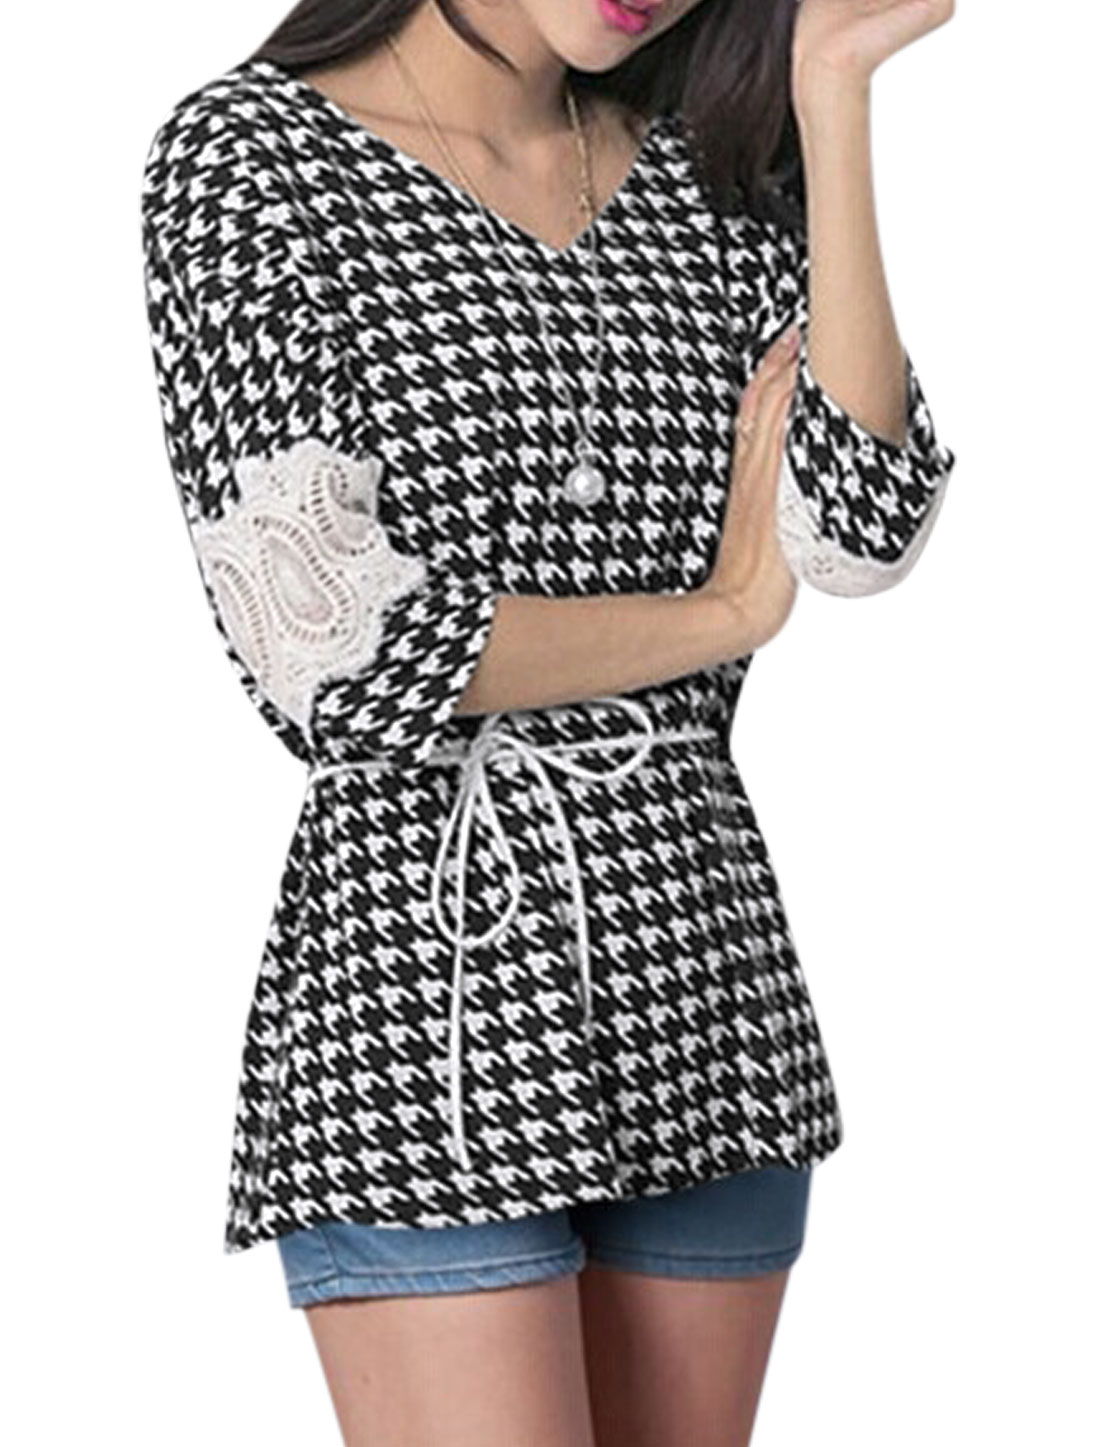 Women Houndstooth 3/4 Batwing Tunic Top w Waist String Black White XS